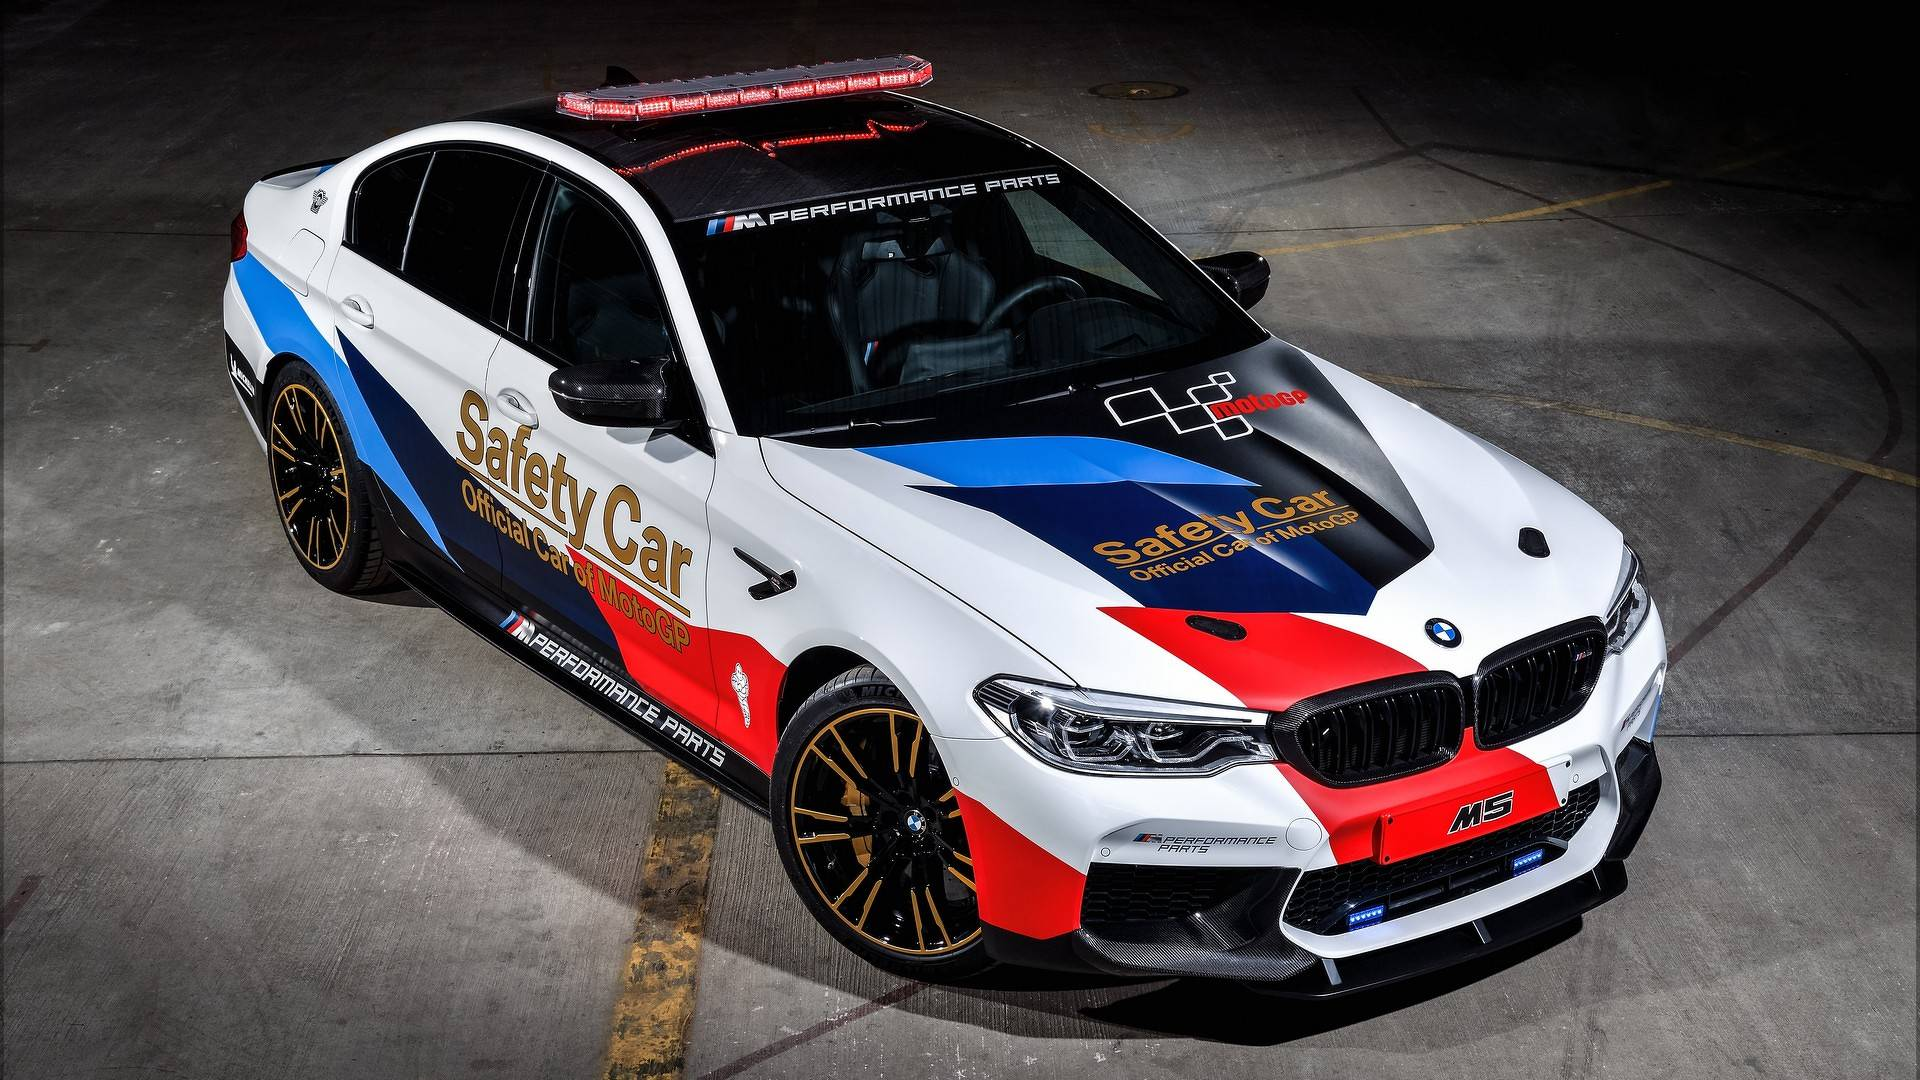 bmw-m5-motogp-safety-car (7)